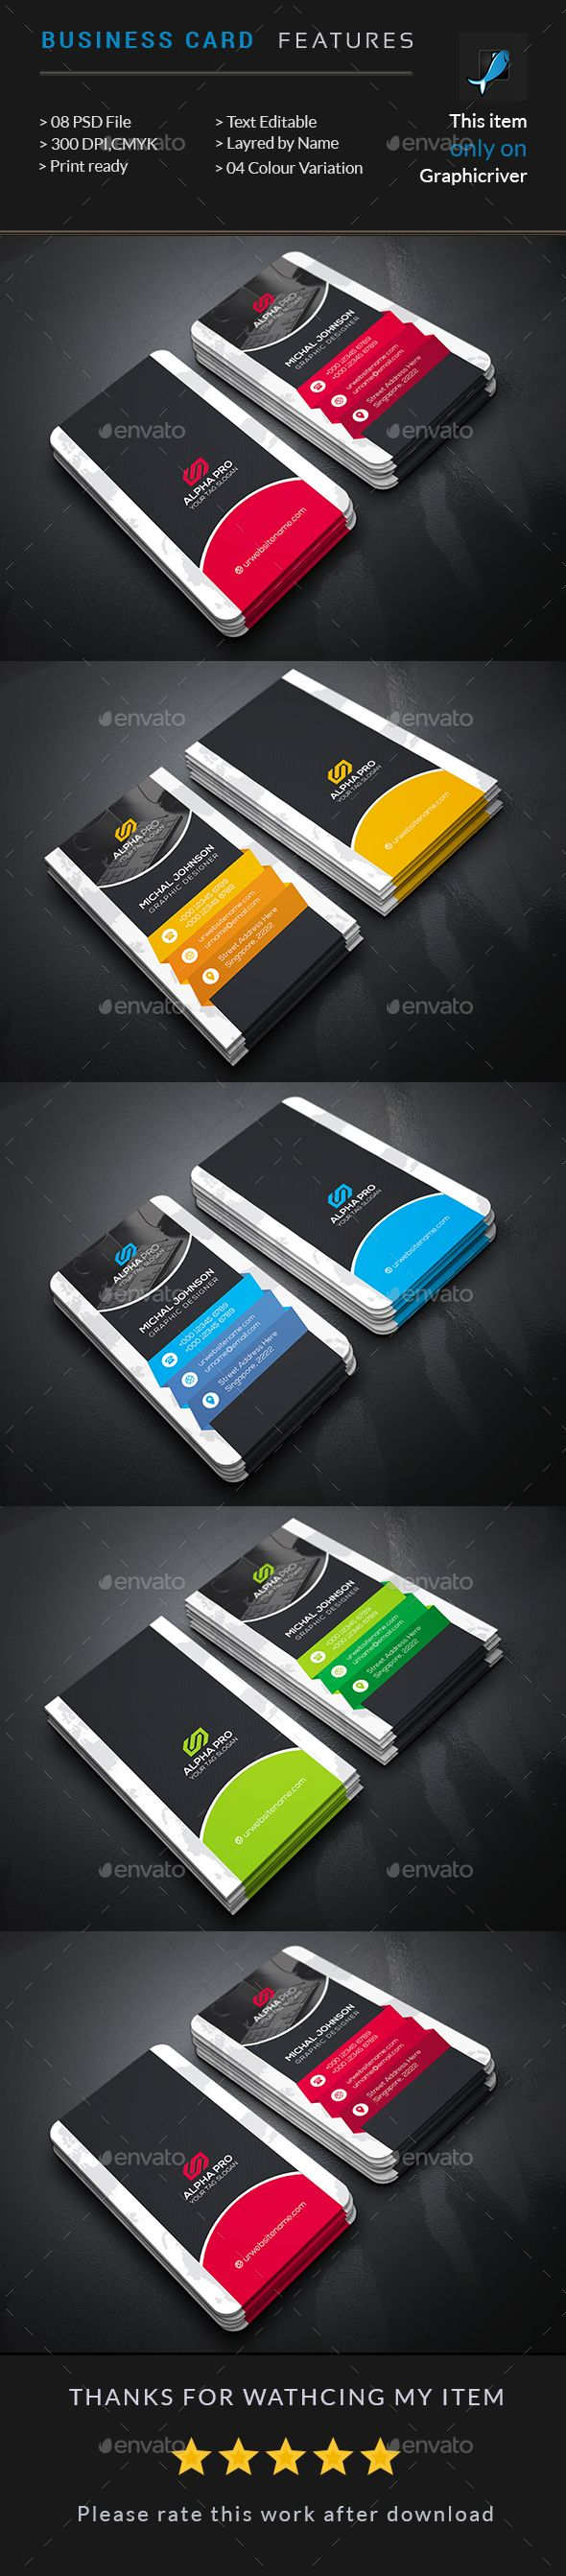 Business Card  - #Business Cards Print Templates Download here: https://graphicriver.net/item/business-card-/17371749?ref=classicdesignp